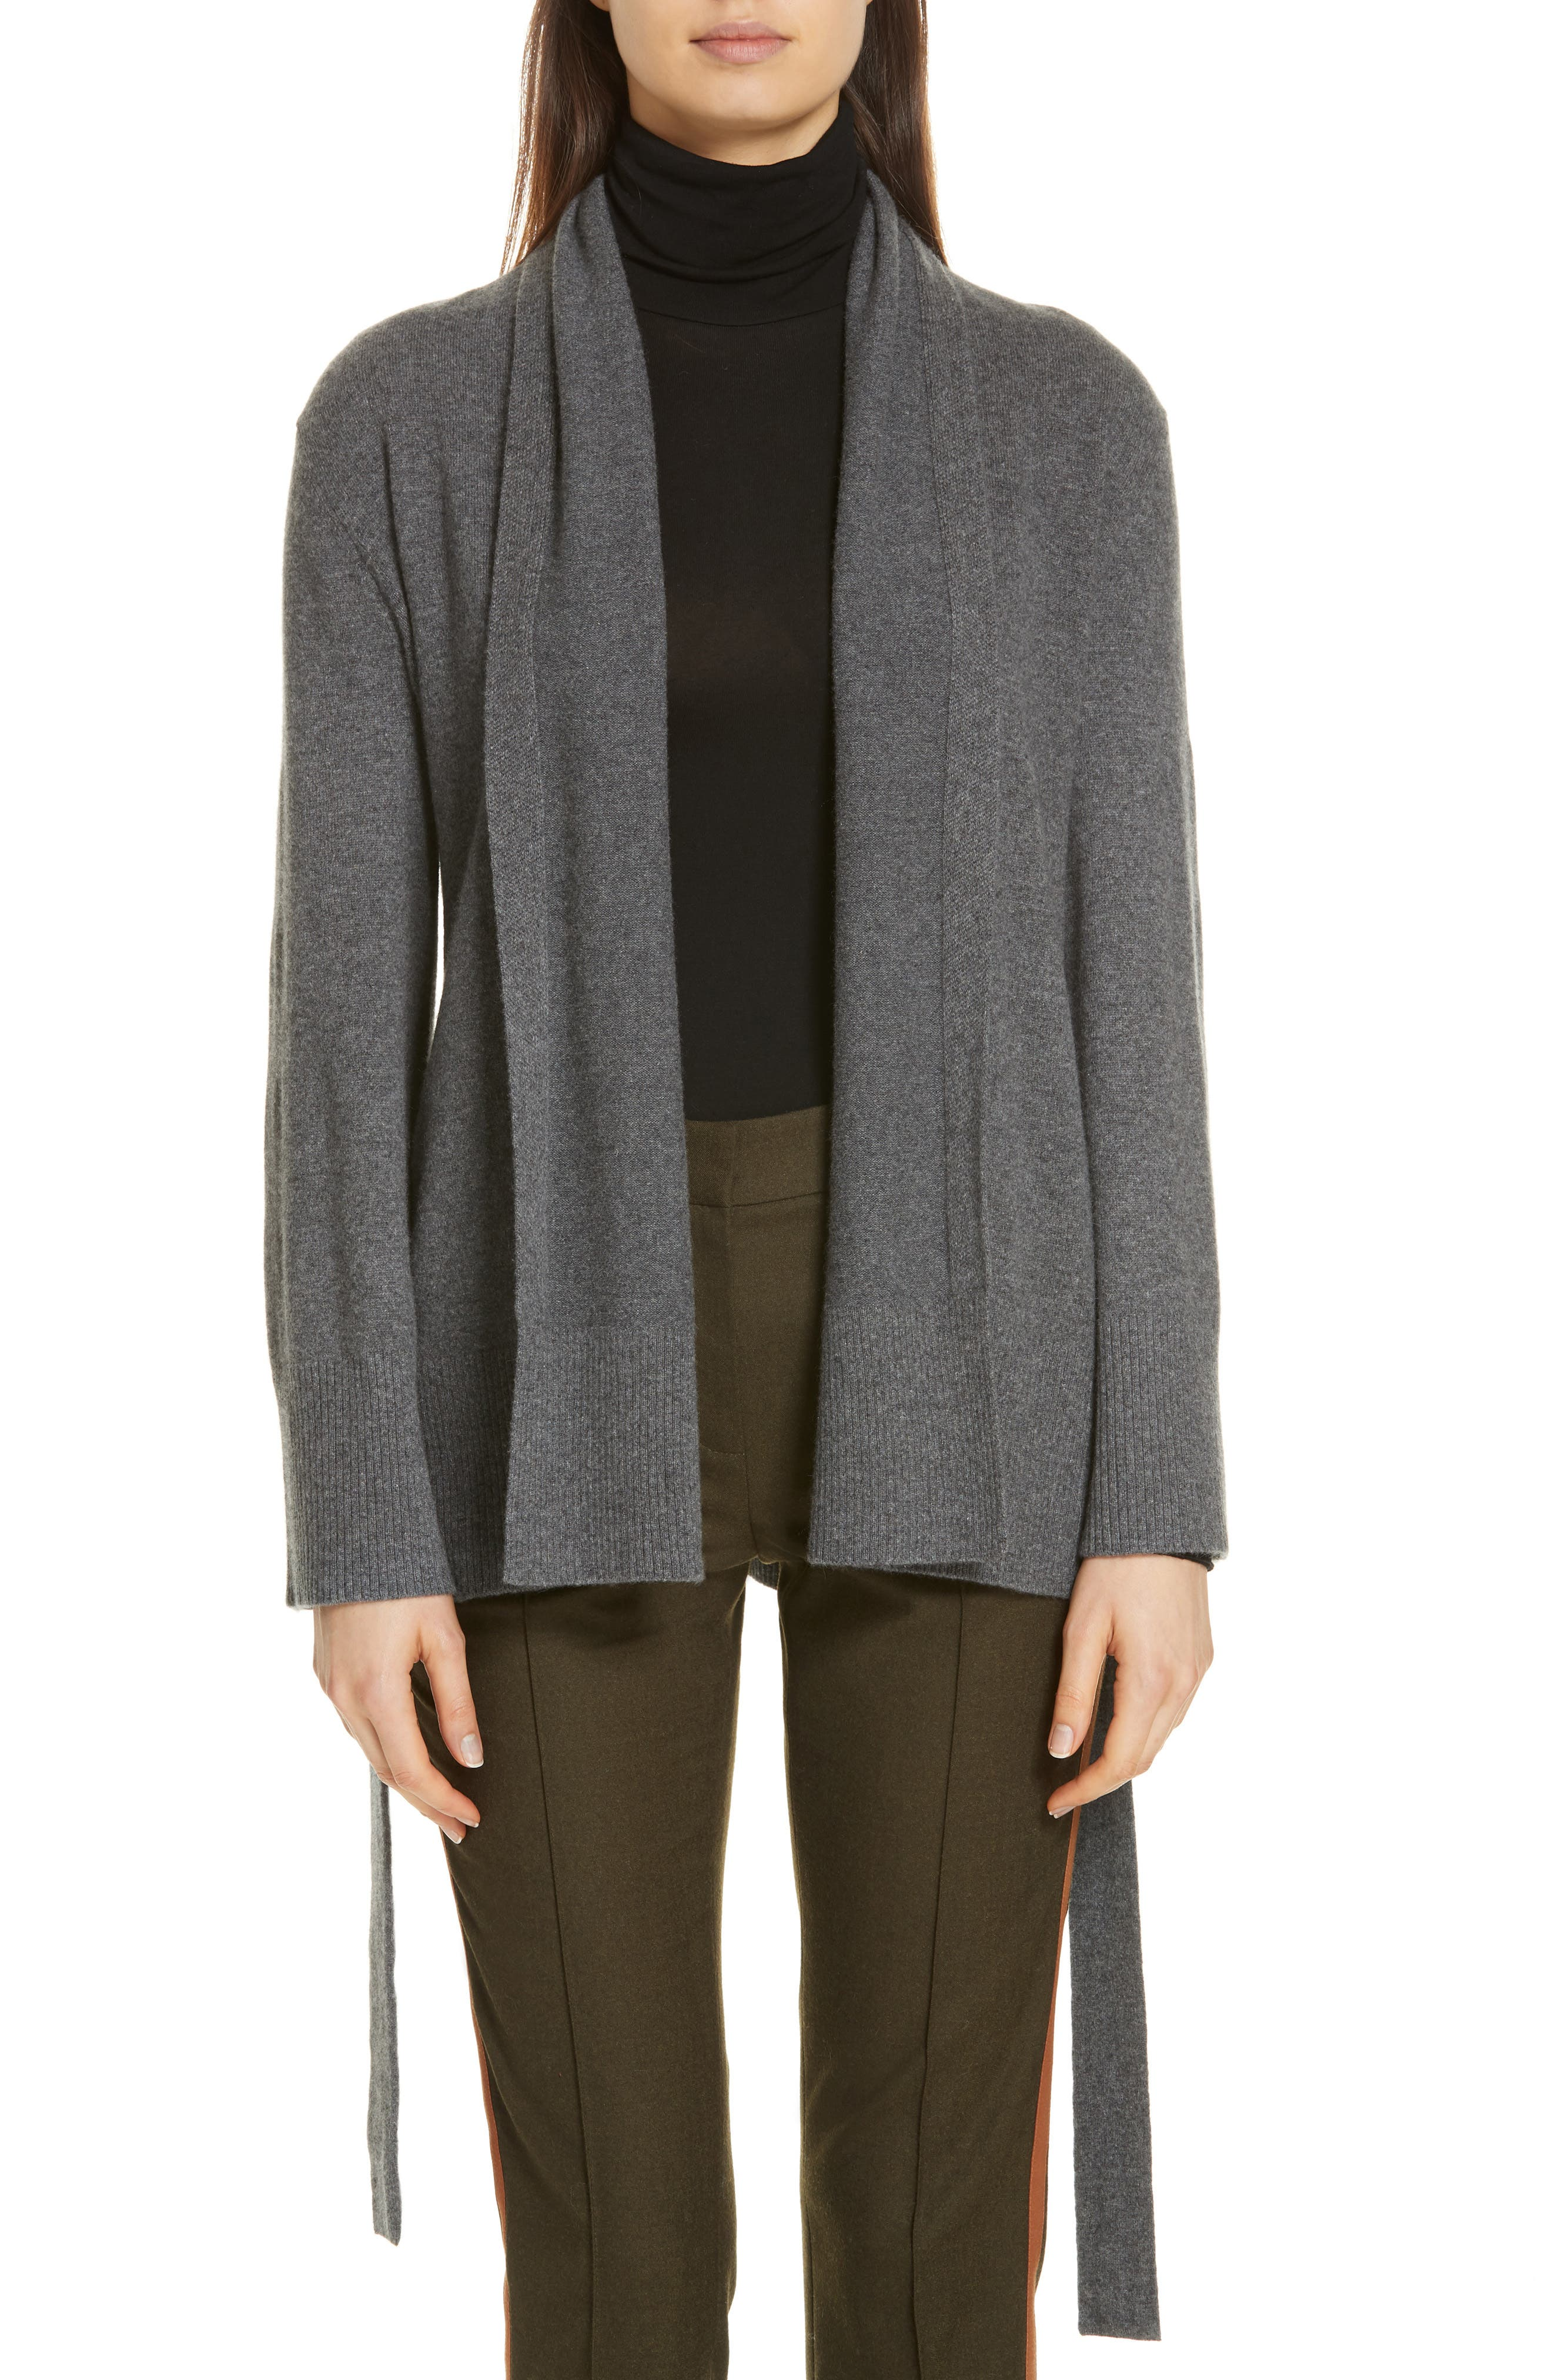 NORDSTROM SIGNATURE,                             Belted Cashmere Blend Cardigan,                             Main thumbnail 1, color,                             021